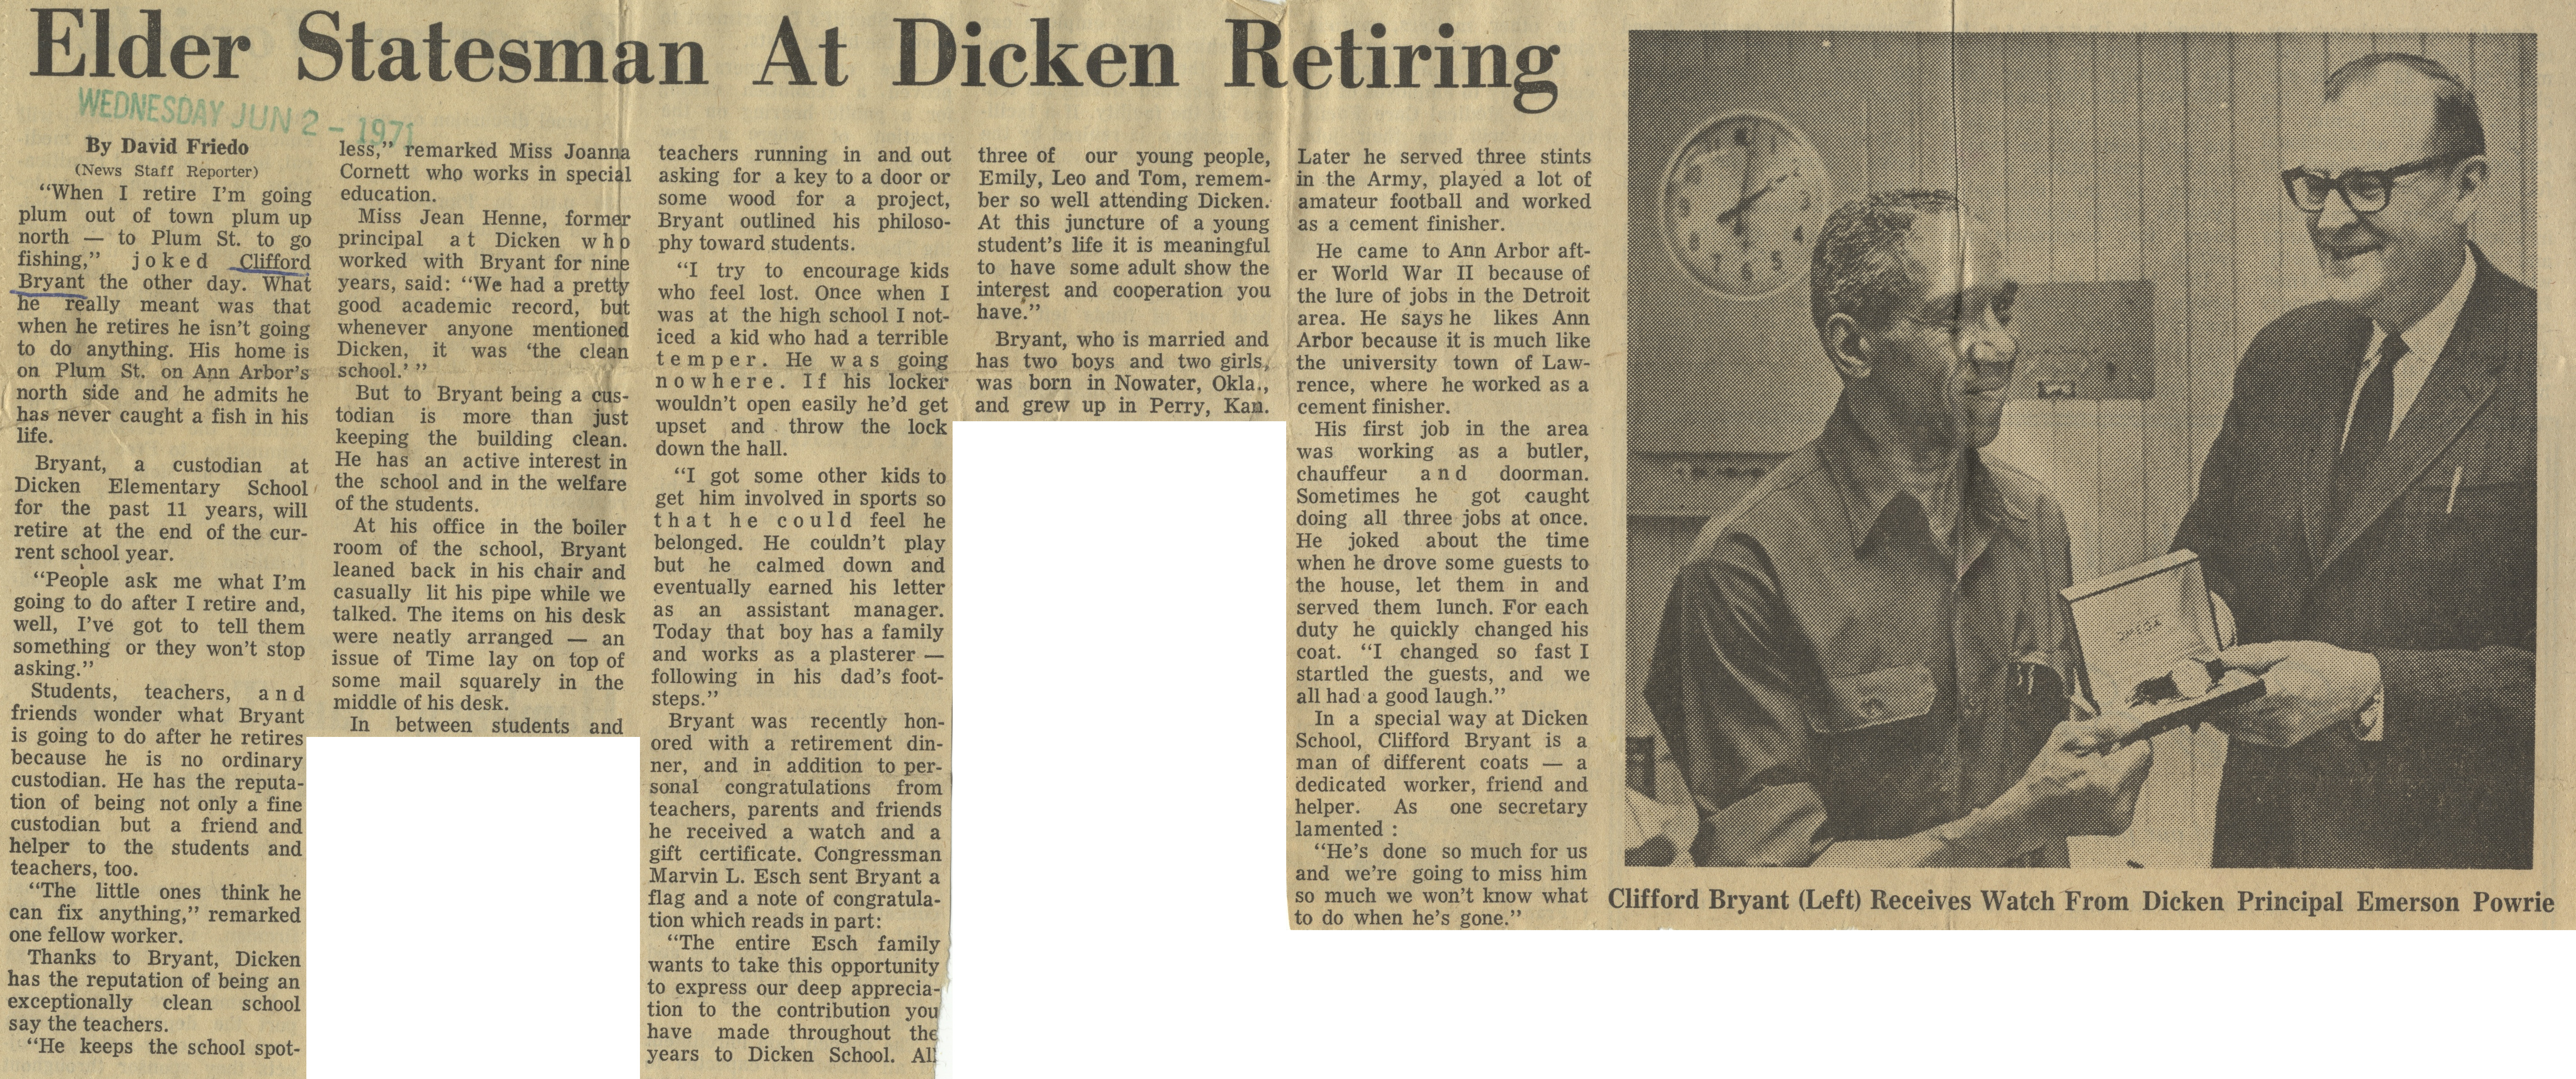 Elder Statesman At Dicken Retiring image